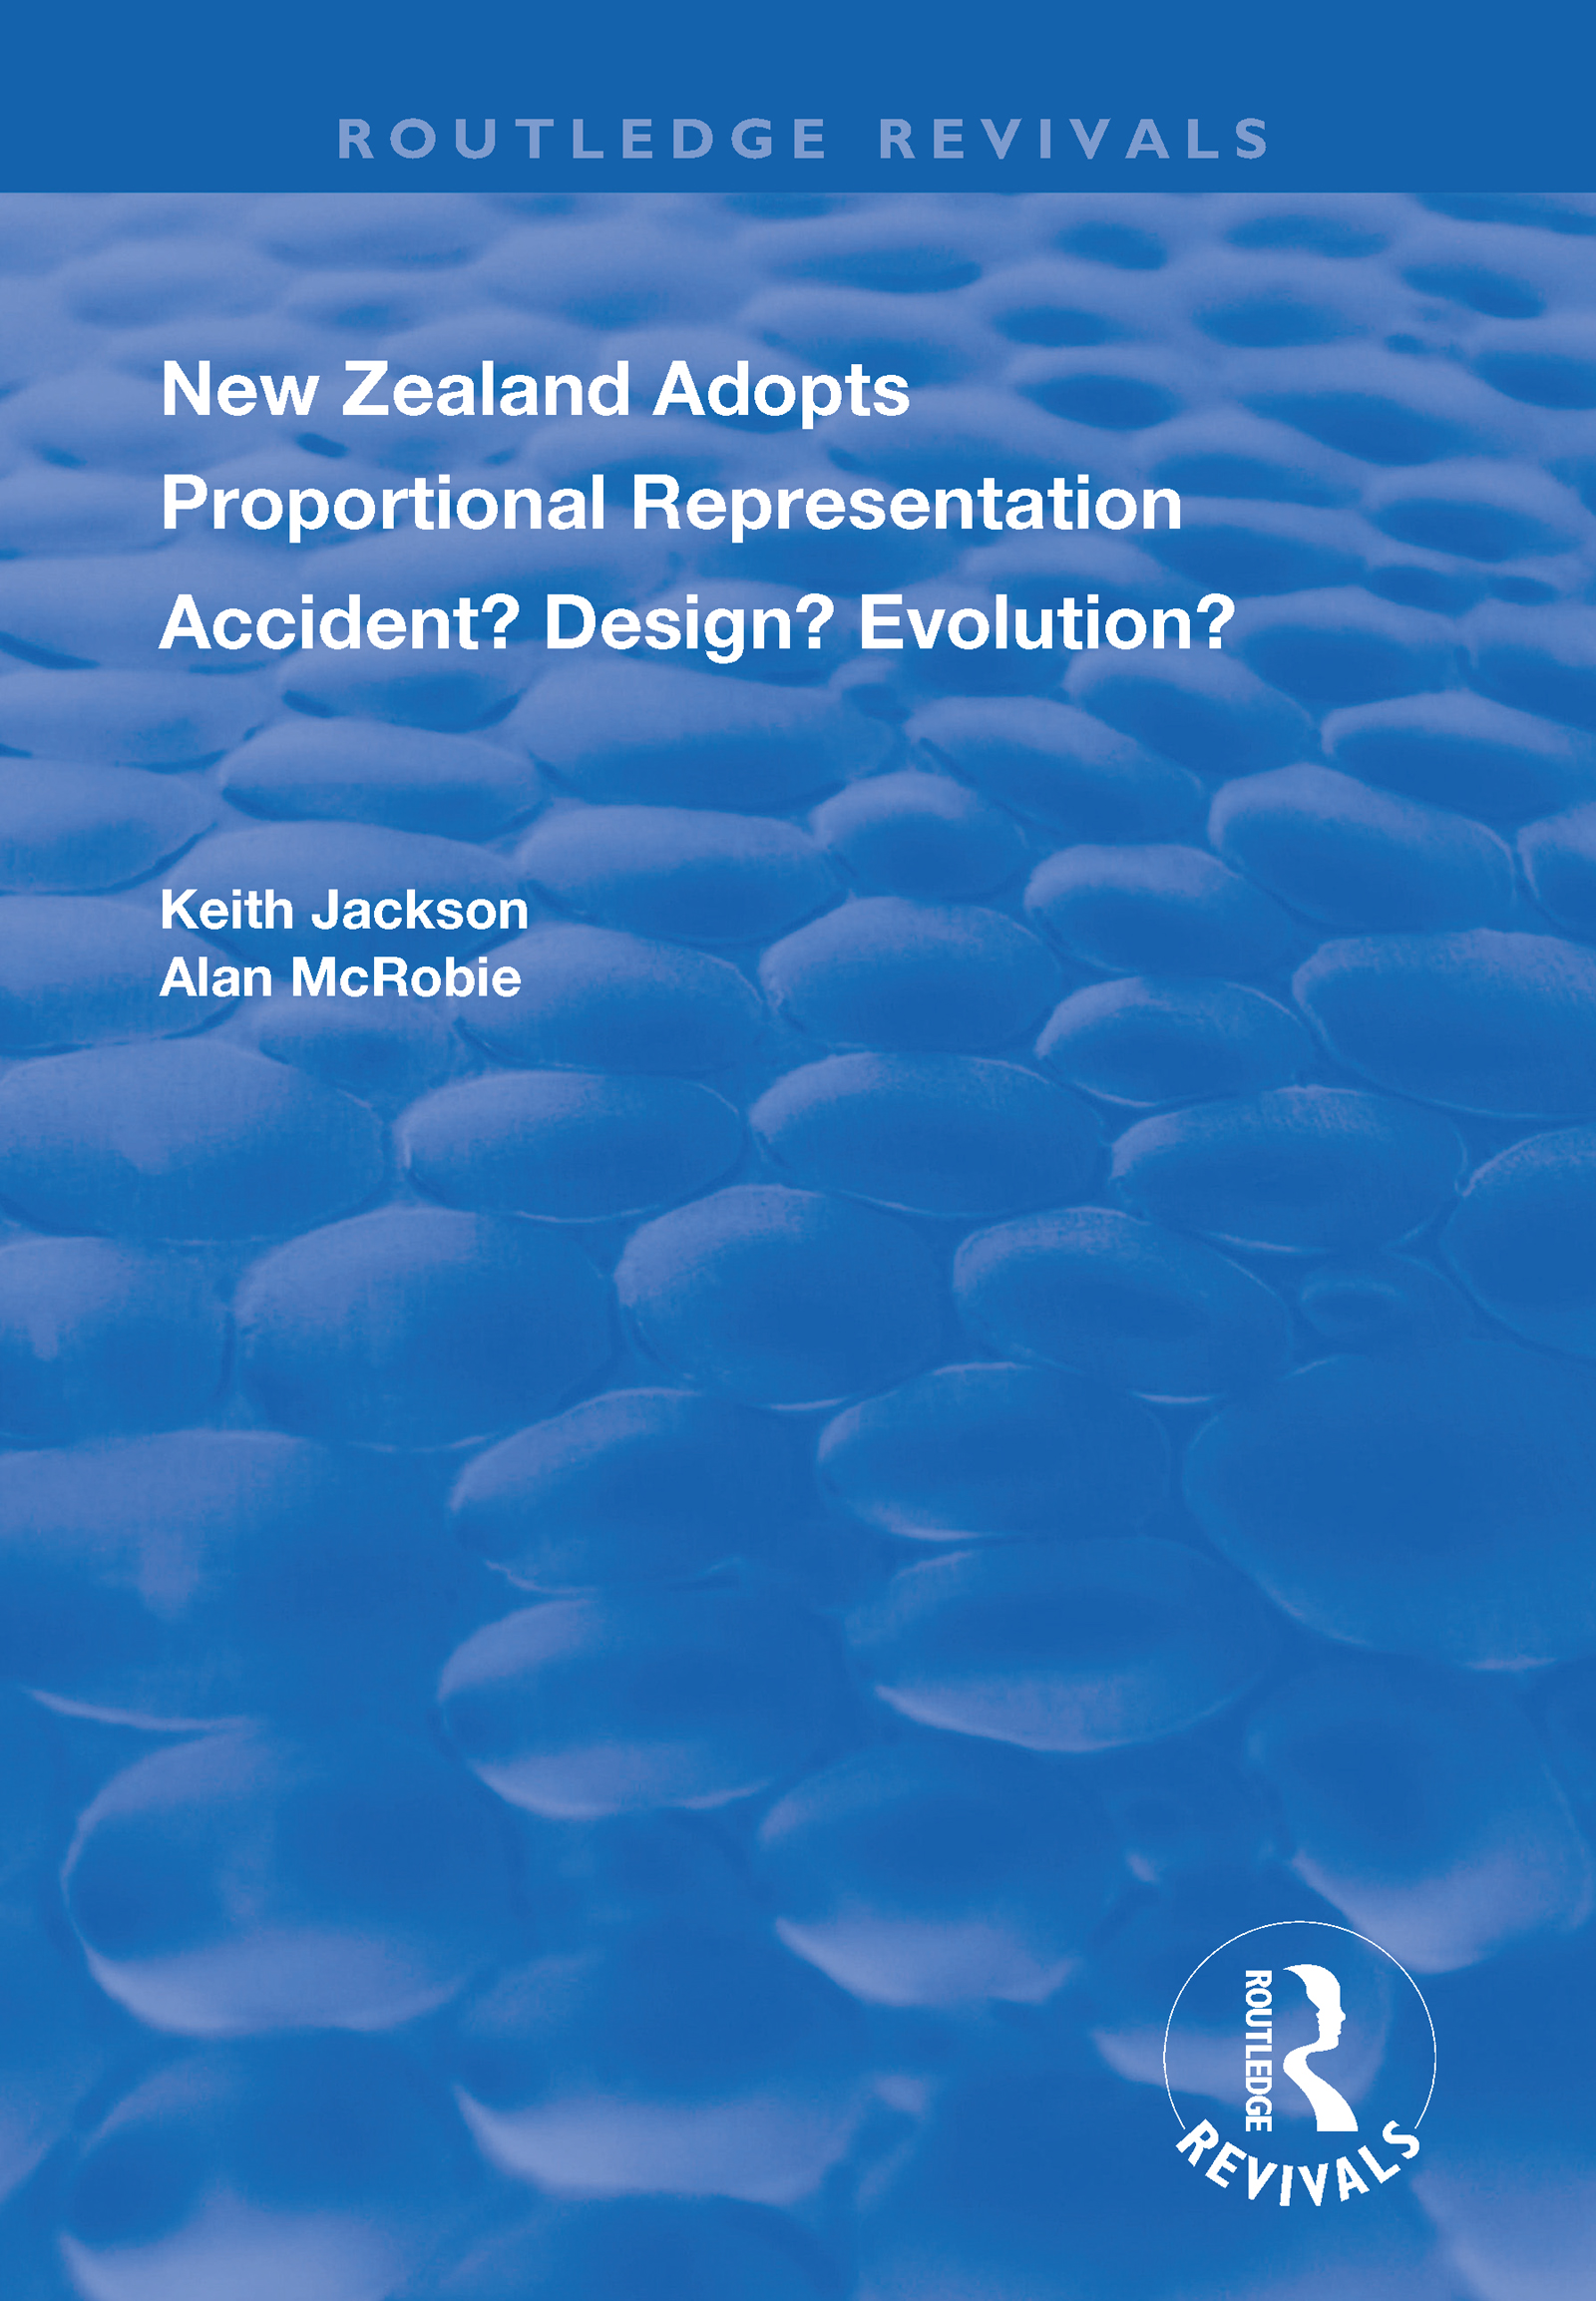 New Zealand Adopts Proportional Representation: Accident? Design? Evolution? book cover